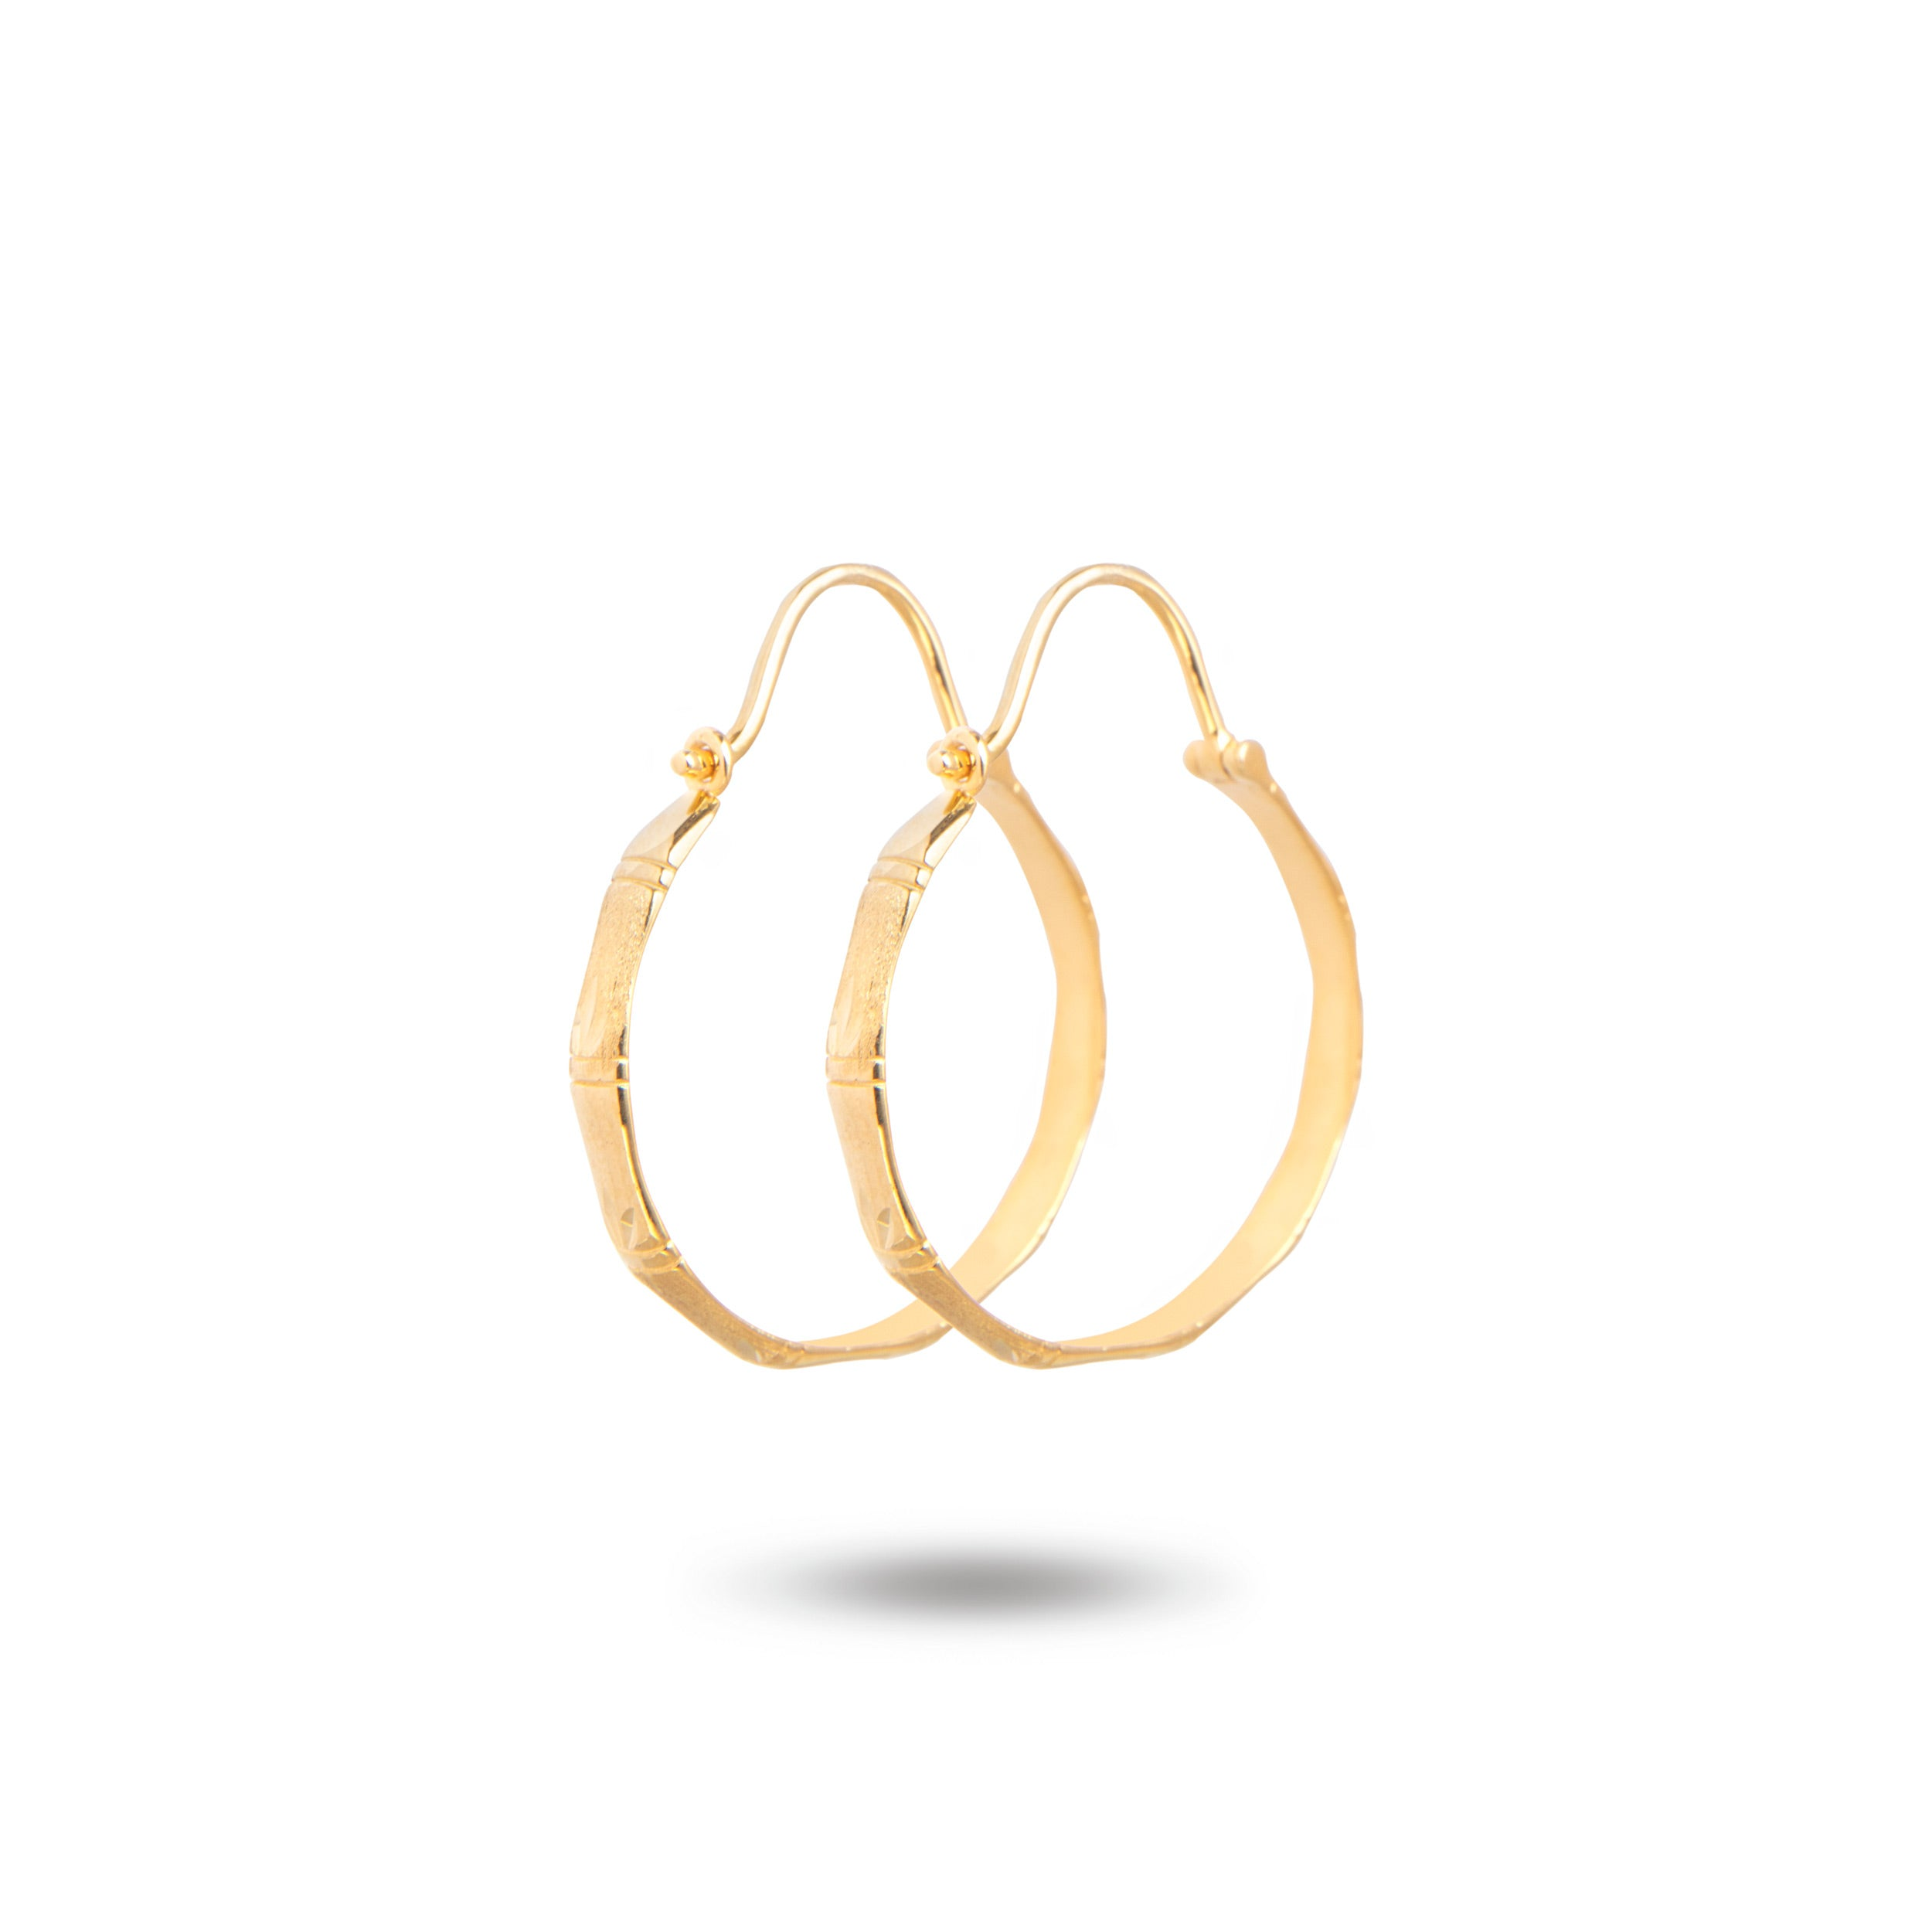 14k Yellow Gold Bamboo Leaf Hoop Earrings | ER585-14